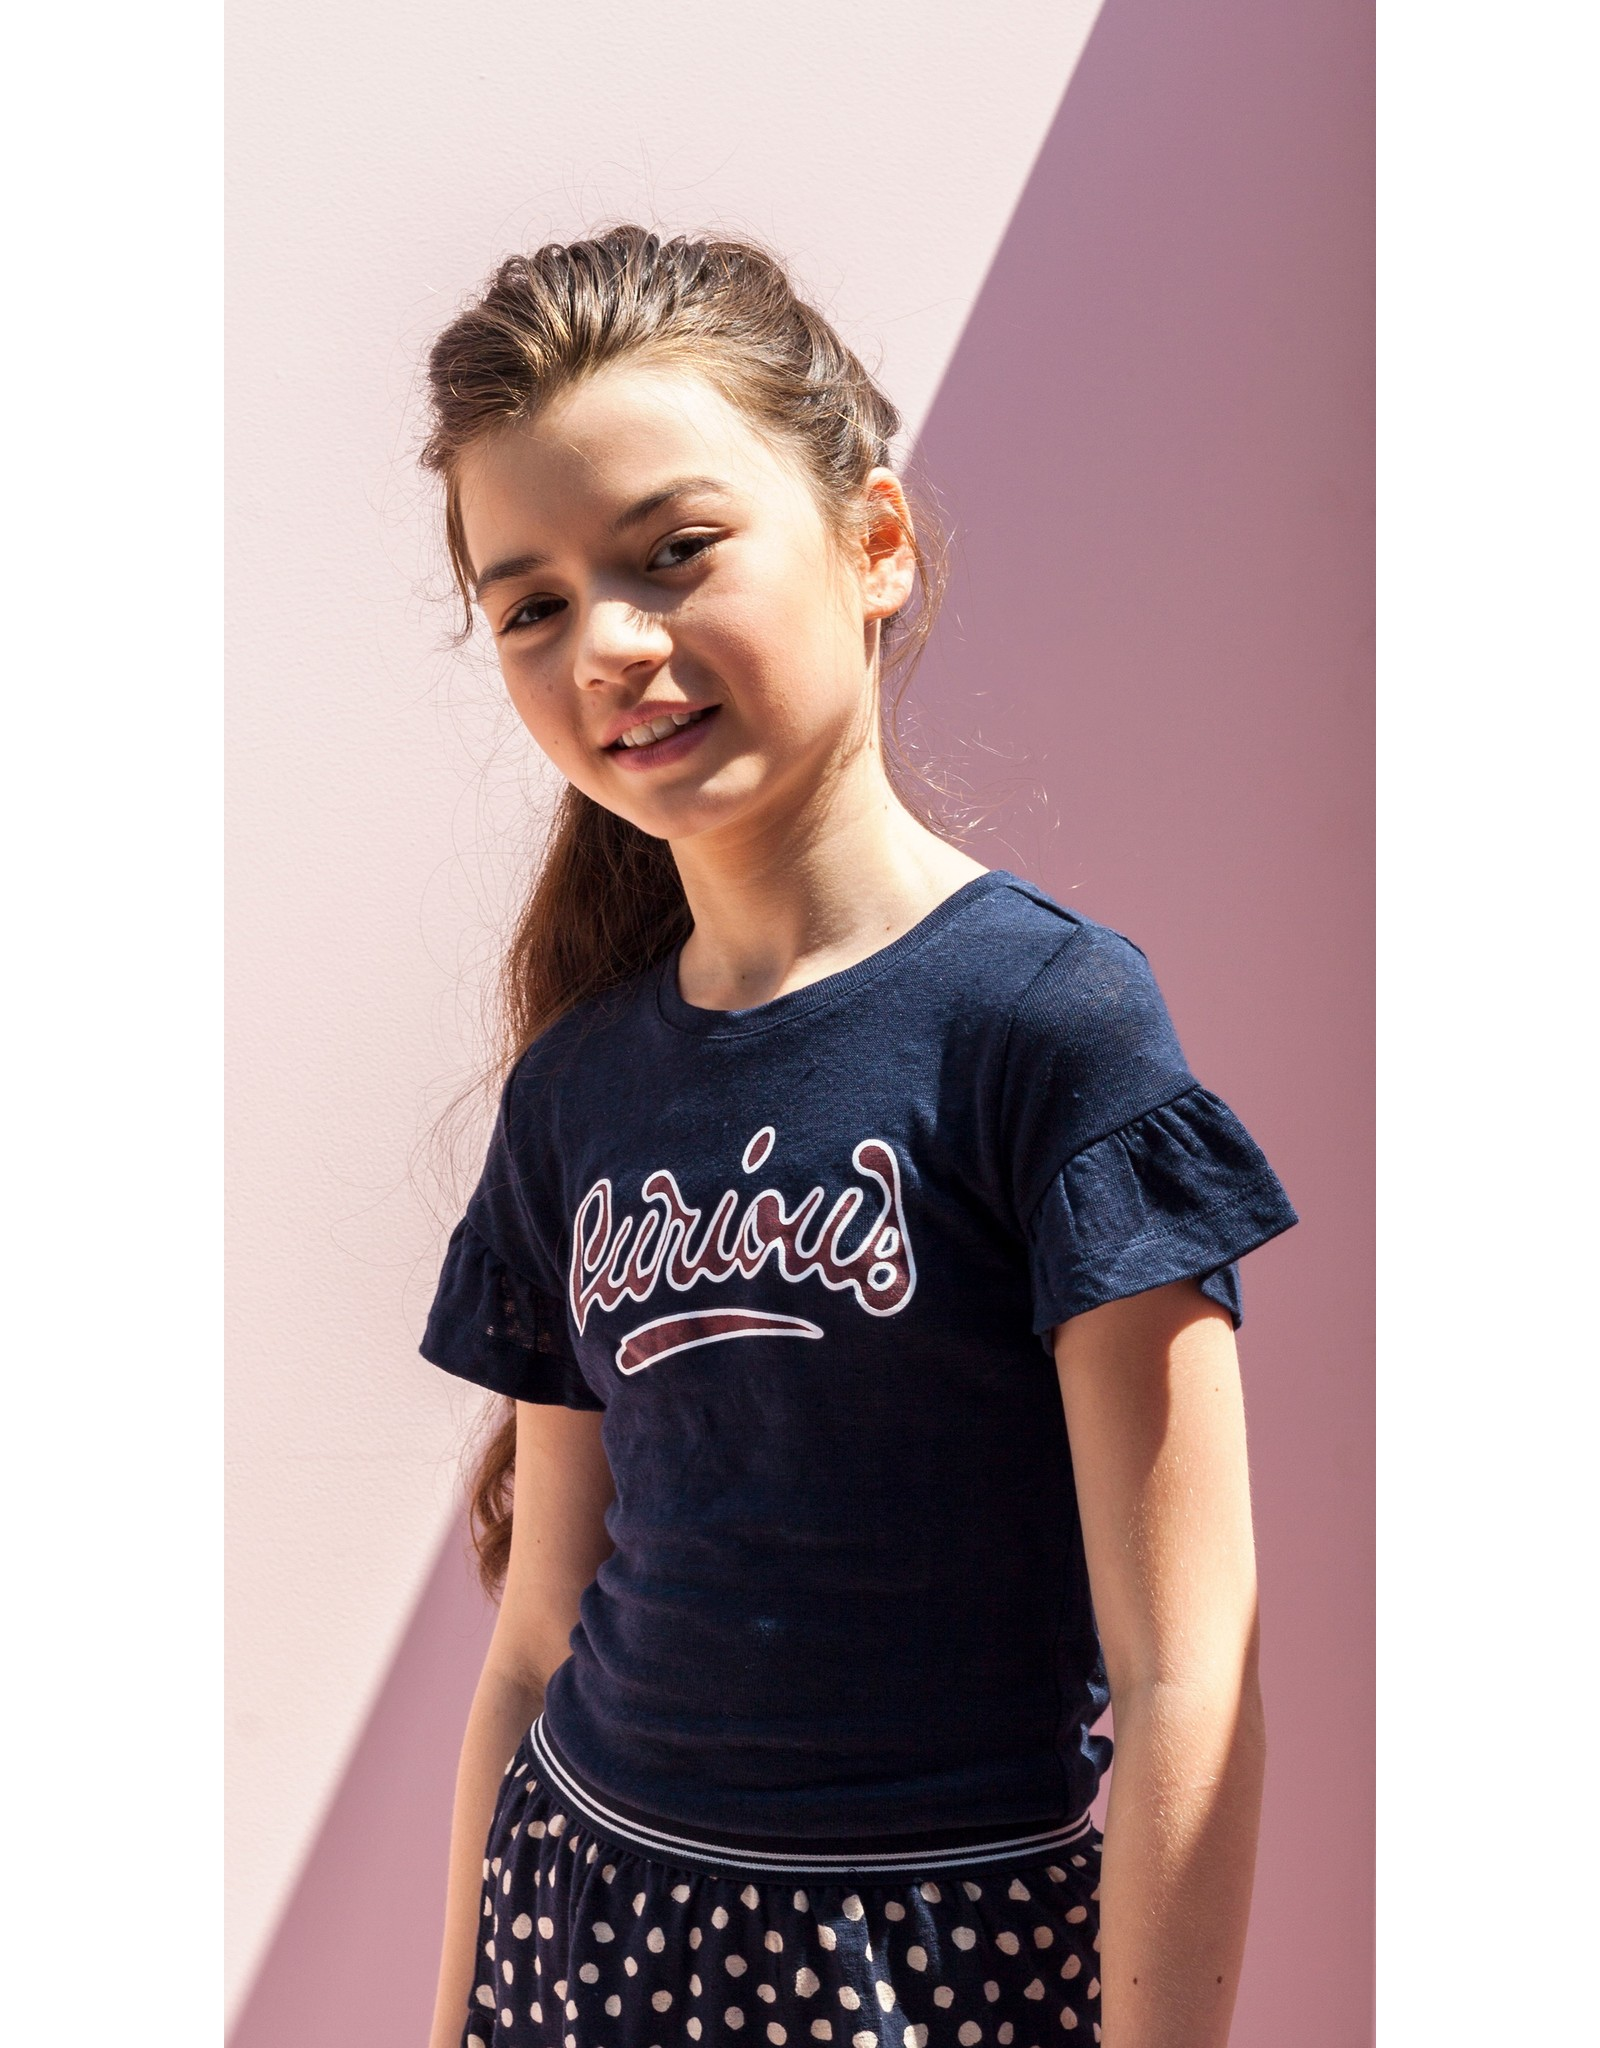 Looxs Revolution Girls T-shirt s/s  maat 128